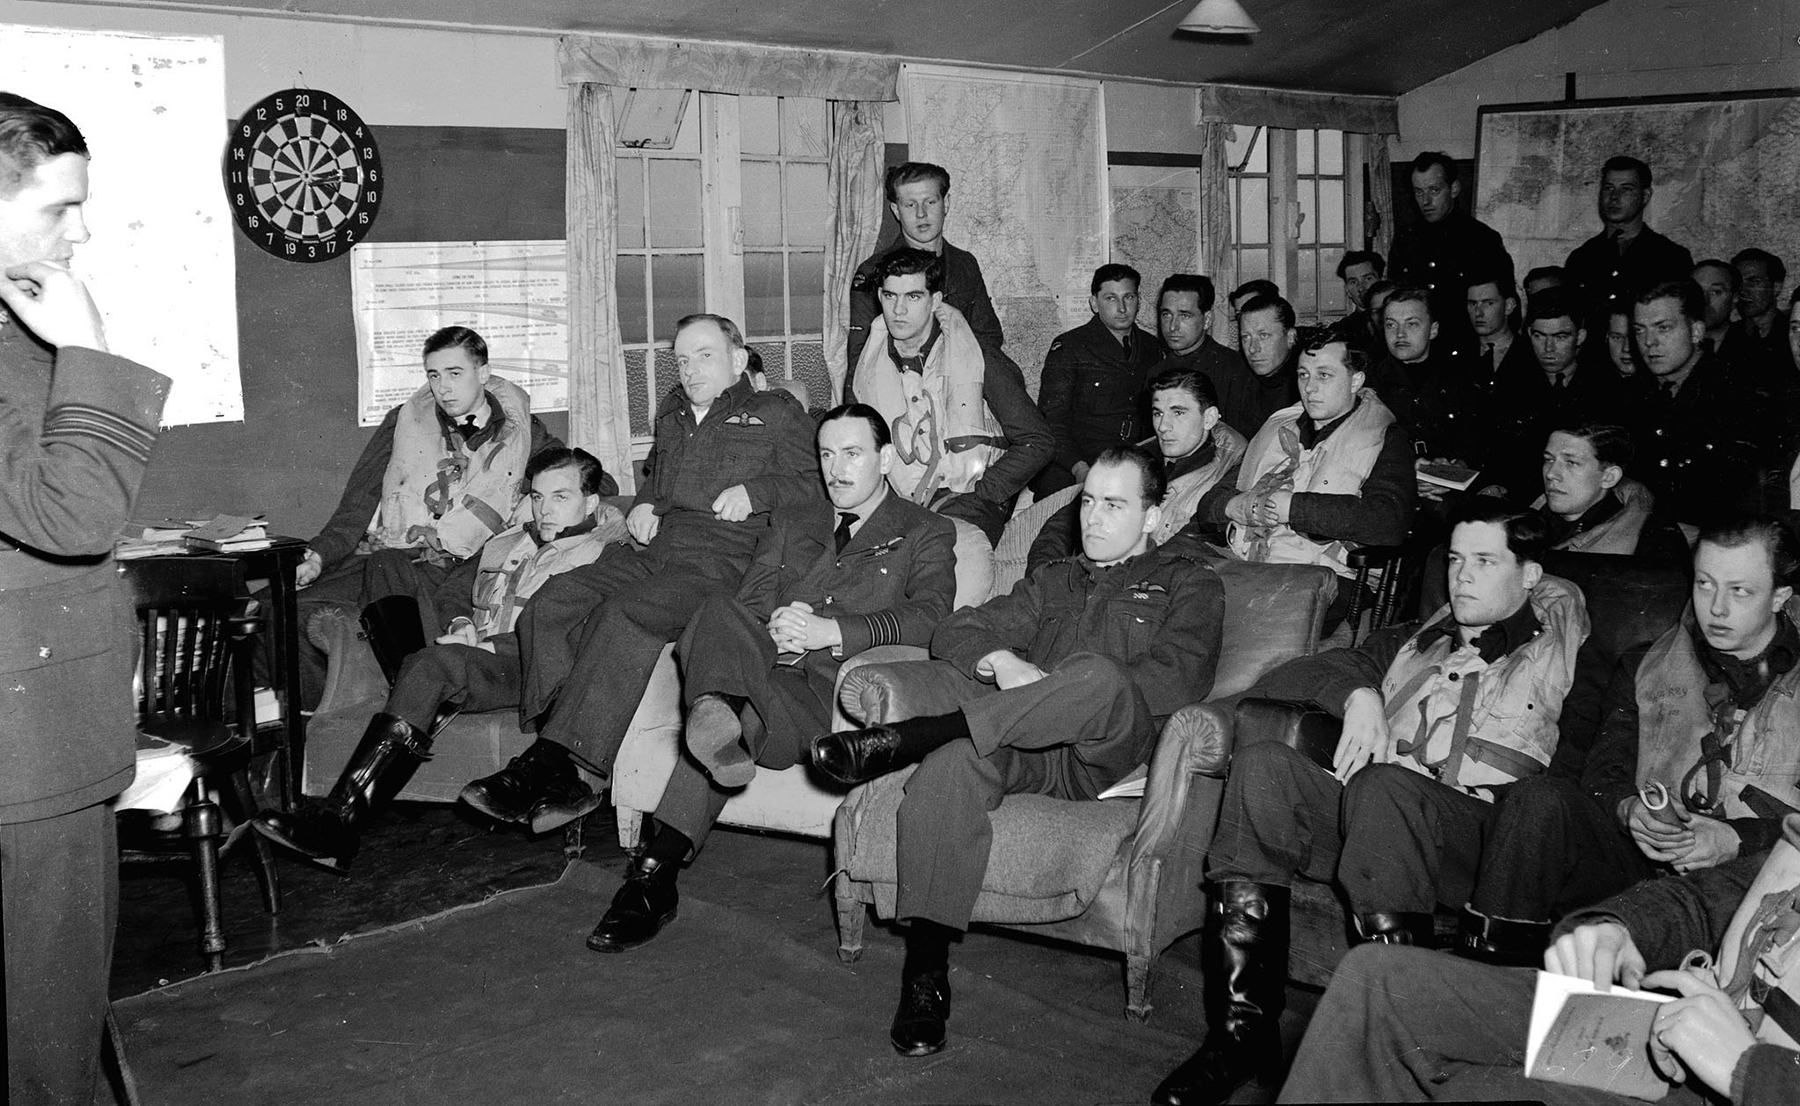 "At Royal Air Force Station Kenley in the United Kingdom on March 21, 1943, Squadron Leader F.K. Belton, also a Protestant padre, takes the church service in the dispersal hut of 403 Squadron, Royal Canadian Air Force. Each pilot is wearing his ""Mae West"", an inflatable life jacket, and all are ready to run to their aircraft in case an alarm should sound or they should be ordered on a sweep. Almost all of the aircrew are wearing battledress, as the squadron, commanded by Squadron Leader L.S. Ford, from Liverpool, Nova Scotia, is at readiness. 403 Squadron, formed on March 1, 1941, was the first RCAF 400-series squadron formed overseas as a direct result of Article XV of the British Commonwealth Air Training Plan. PHOTO: PL-15679, DND Archives"